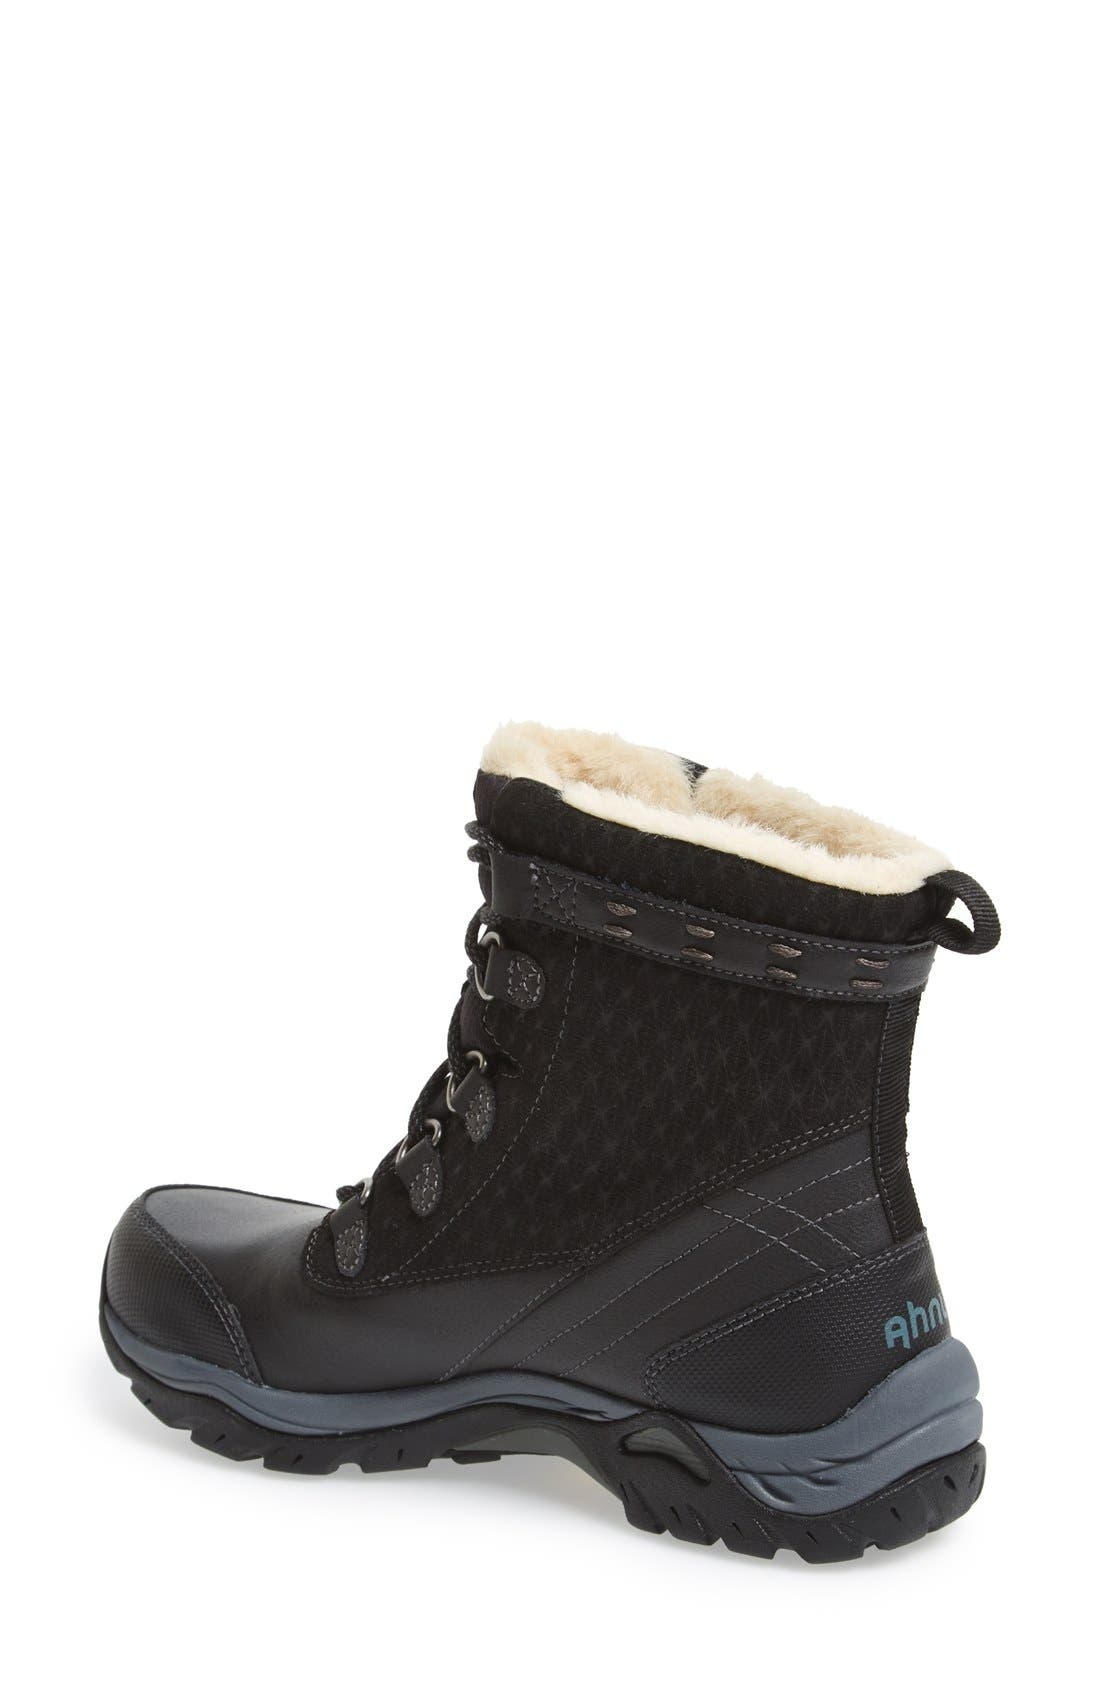 Alternate Image 2  - Ahnu 'Twain Harte' Insulated Waterproof Boot (Women)